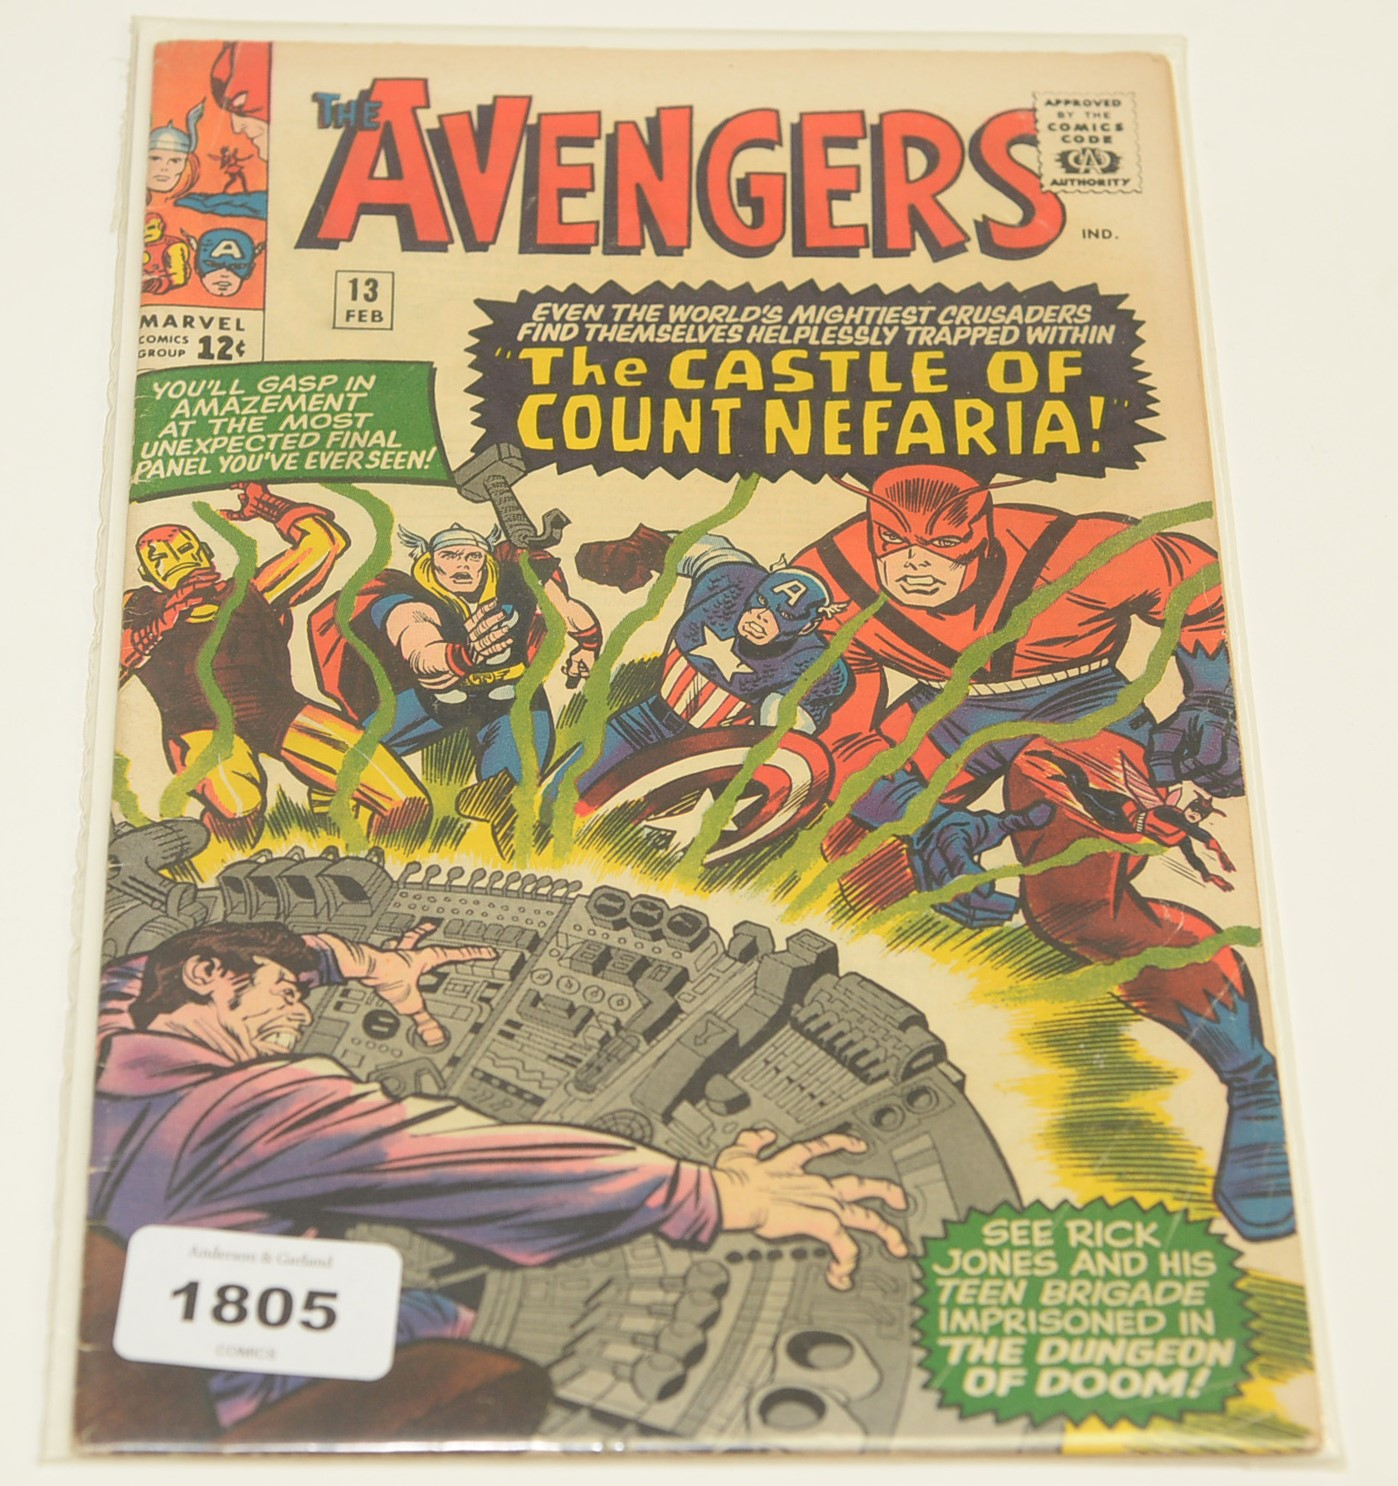 The Avengers No's. 3, 5, 11, 13, 14, 17 and 18 - Image 4 of 7